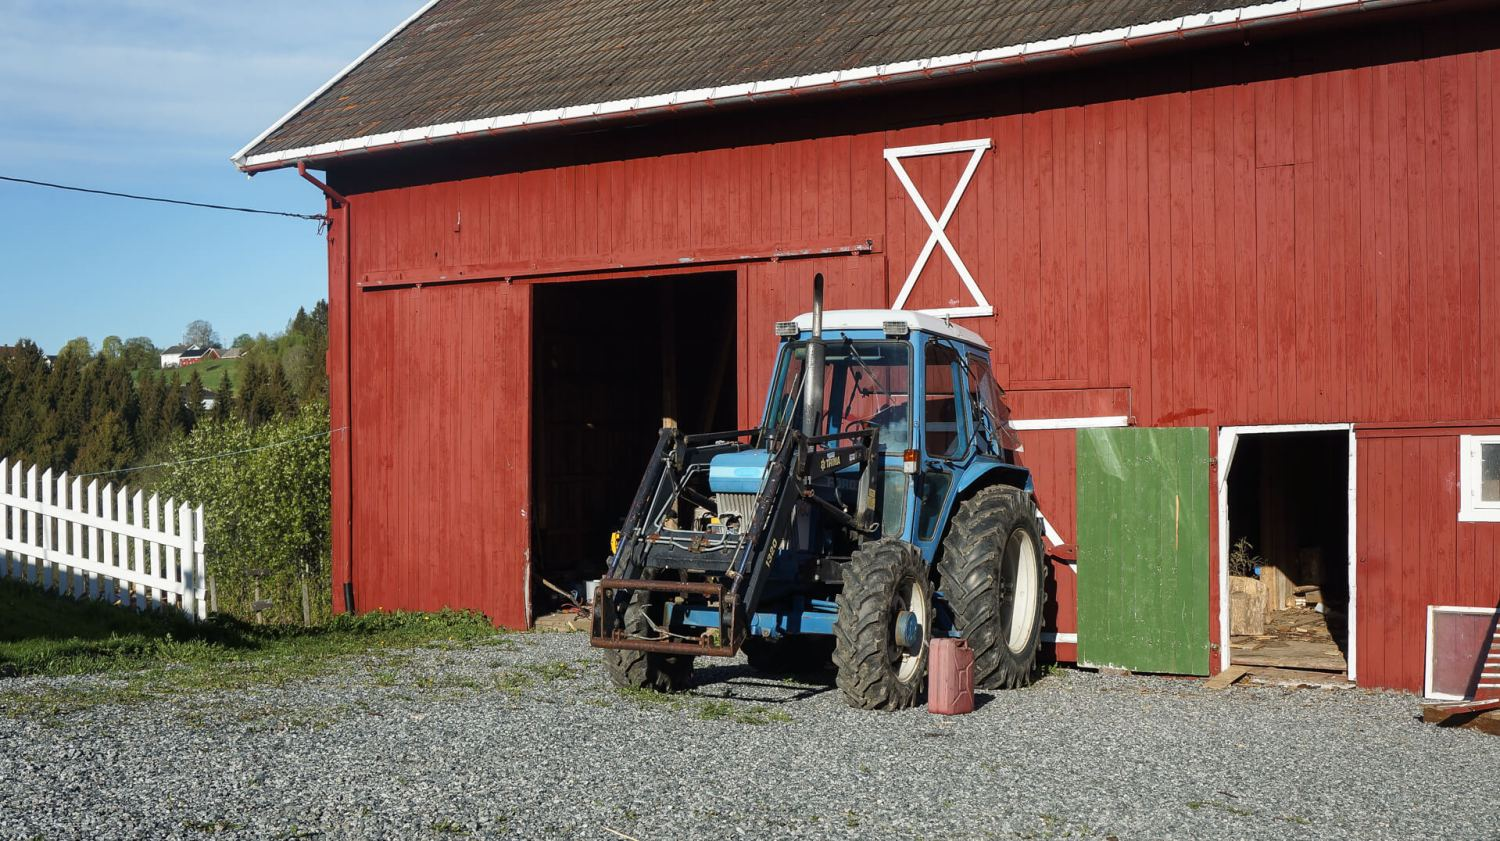 The tractor and the barn